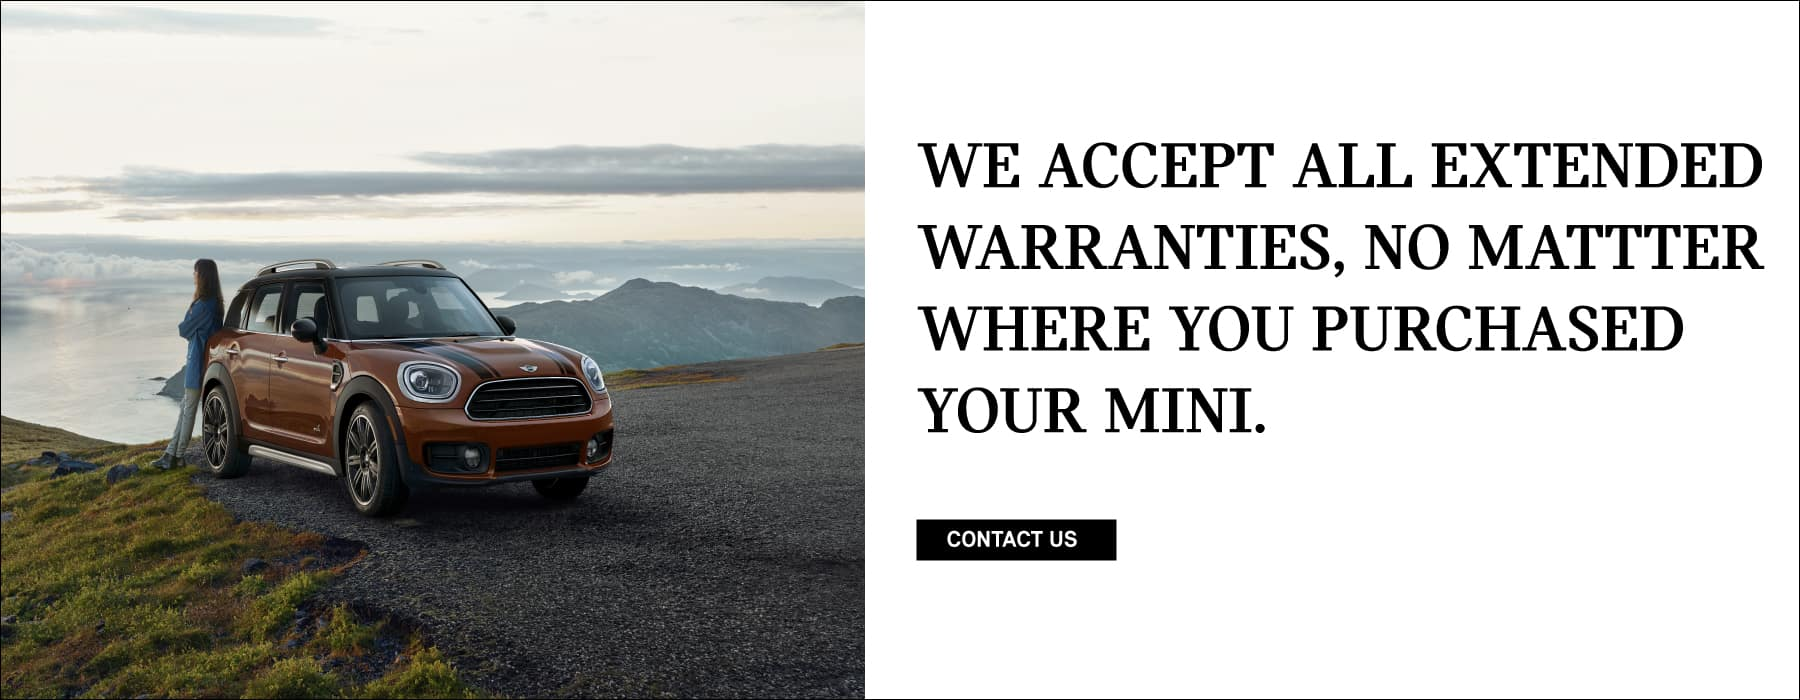 WE ACCEPT ALL EXTENDED WARRANTIES, NO MATTER WHERE YOU PURCHASED YOUR MINI. Click to Contact Us.